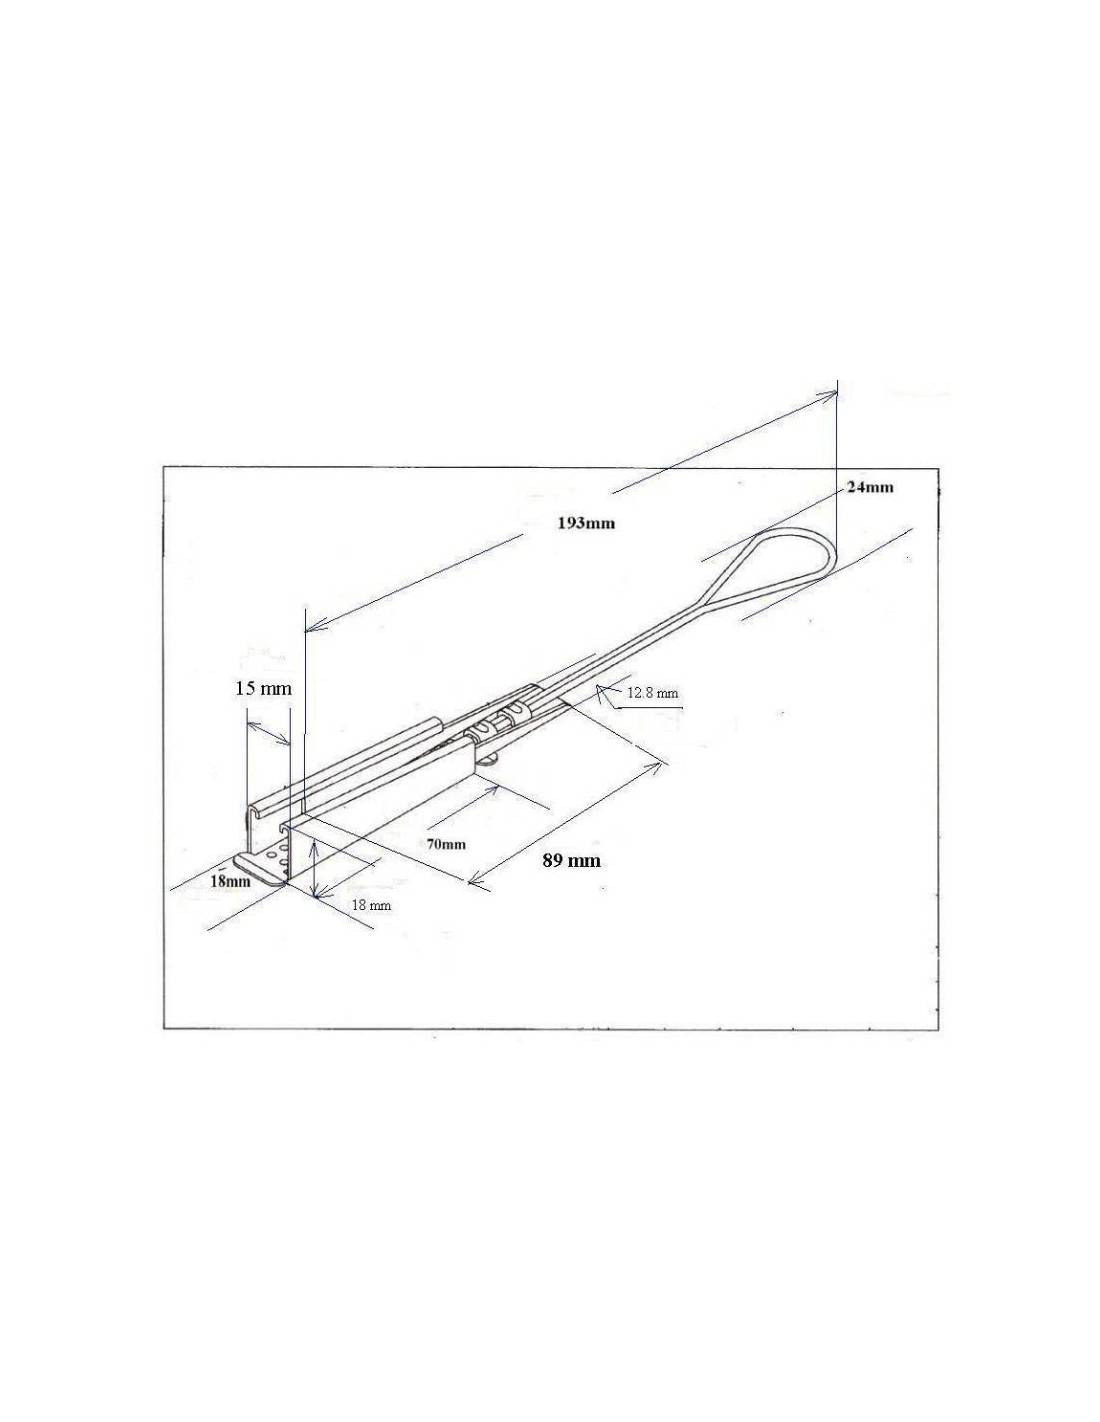 Fiber Optic Clamp For Ftth And Flat Drop Cable Schematic